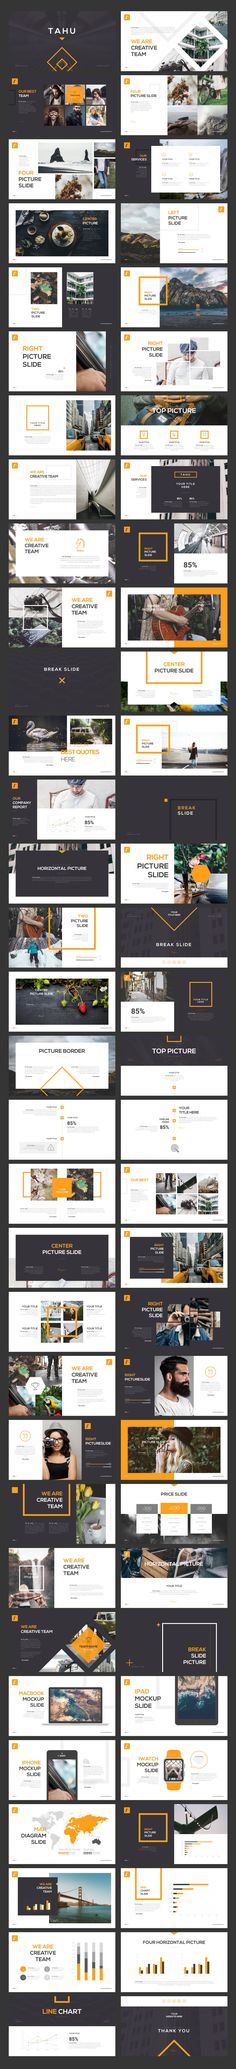 TAHU Keynote Template by Angkalimabelas on @creativemarket